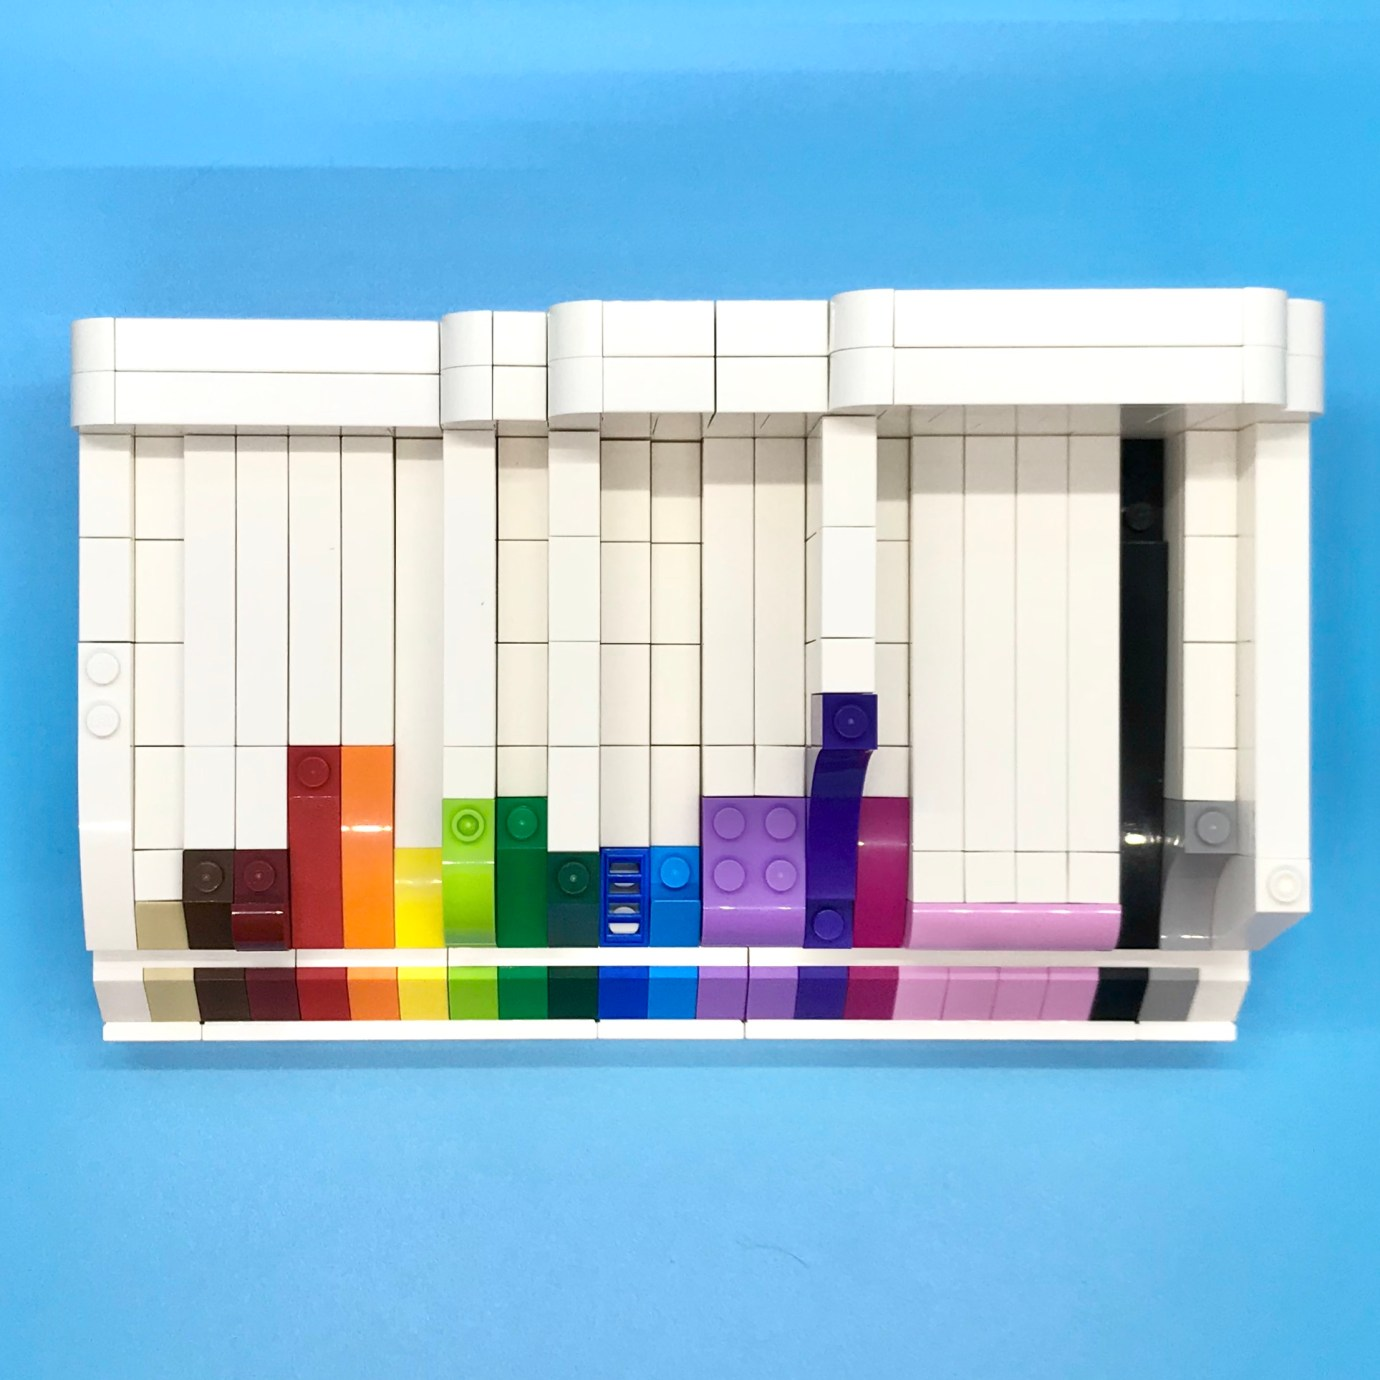 A LEGO slope display, with different slope elements and in a pleasing color order. Top view.